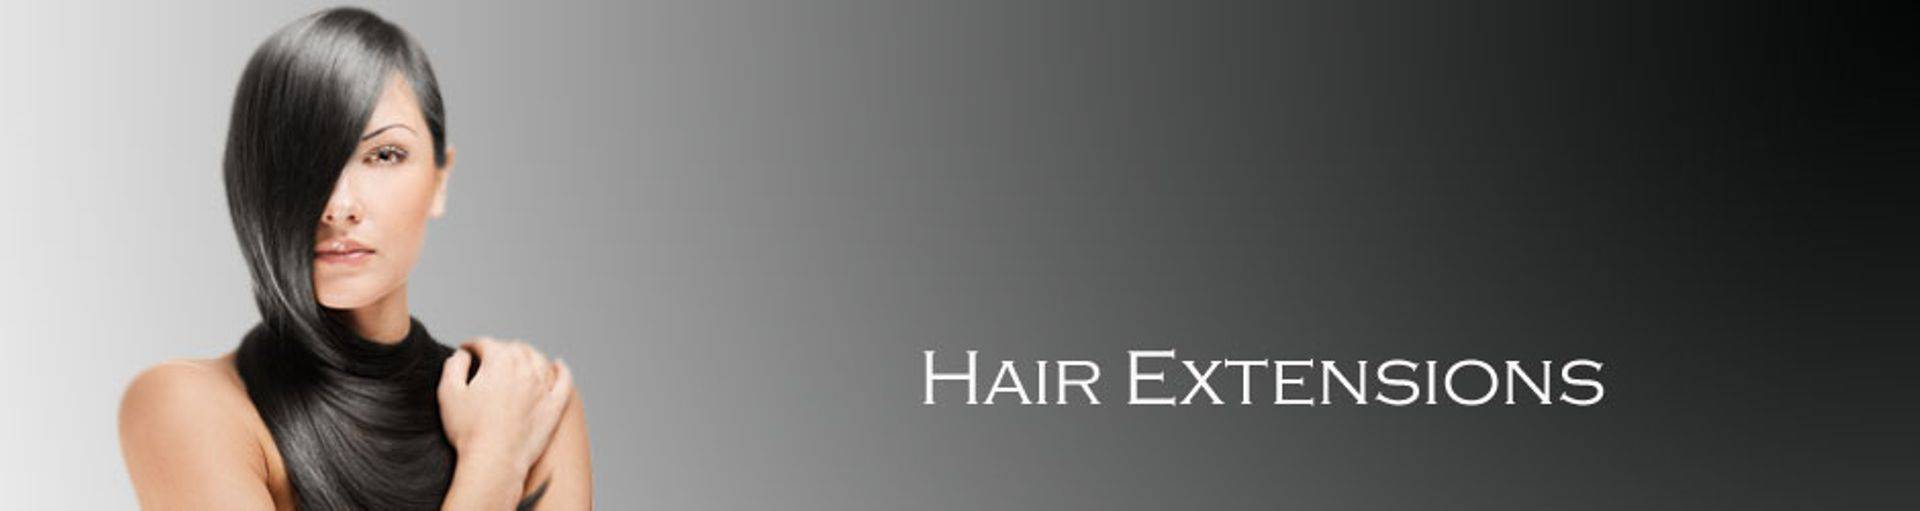 Hair Extensions Colorado springs